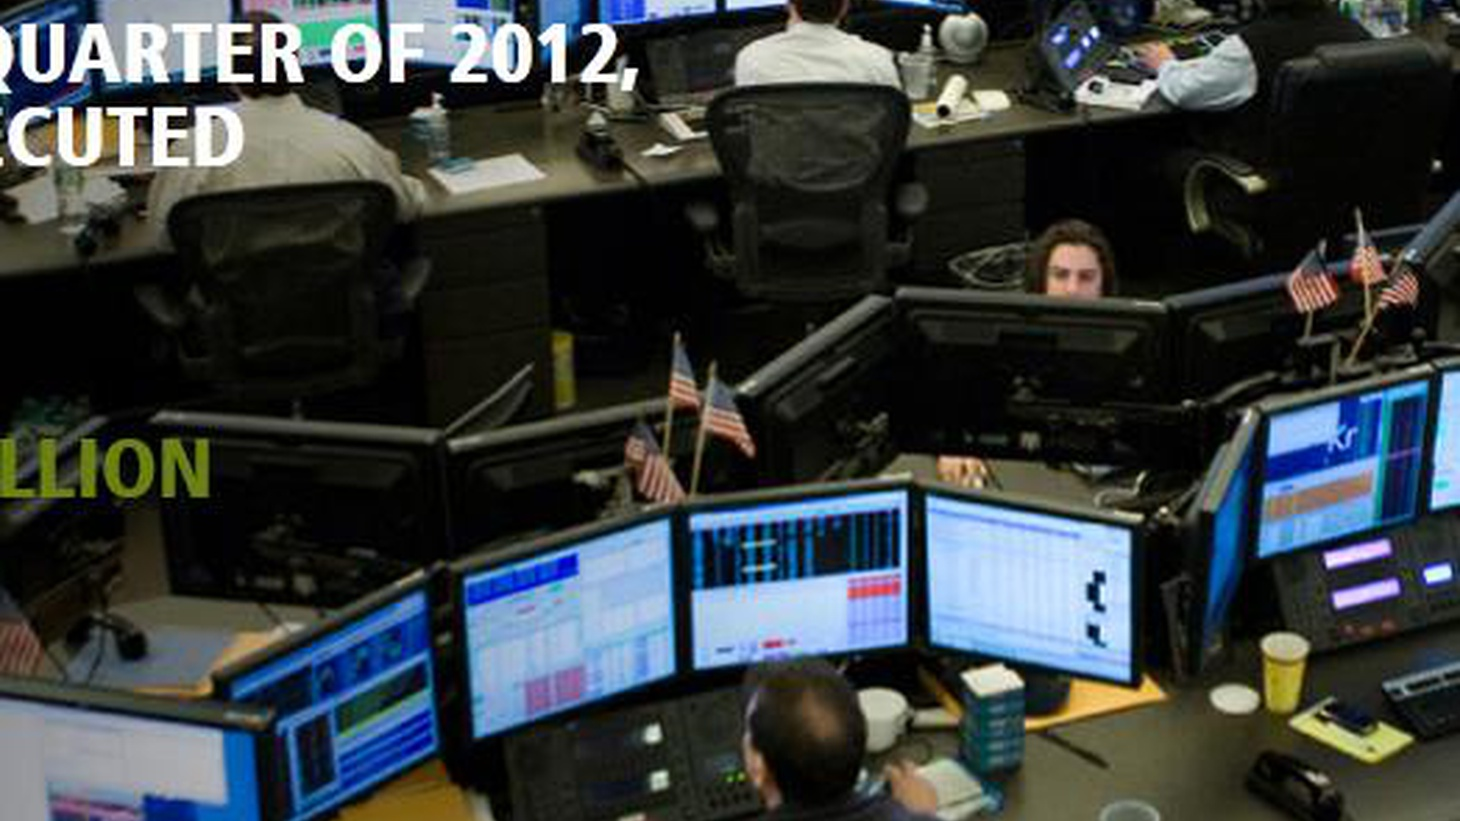 The latest Wall Street chaos reveals how computerized algorithms control financial markets. What's their role in retail customer service and choosing the next music star?